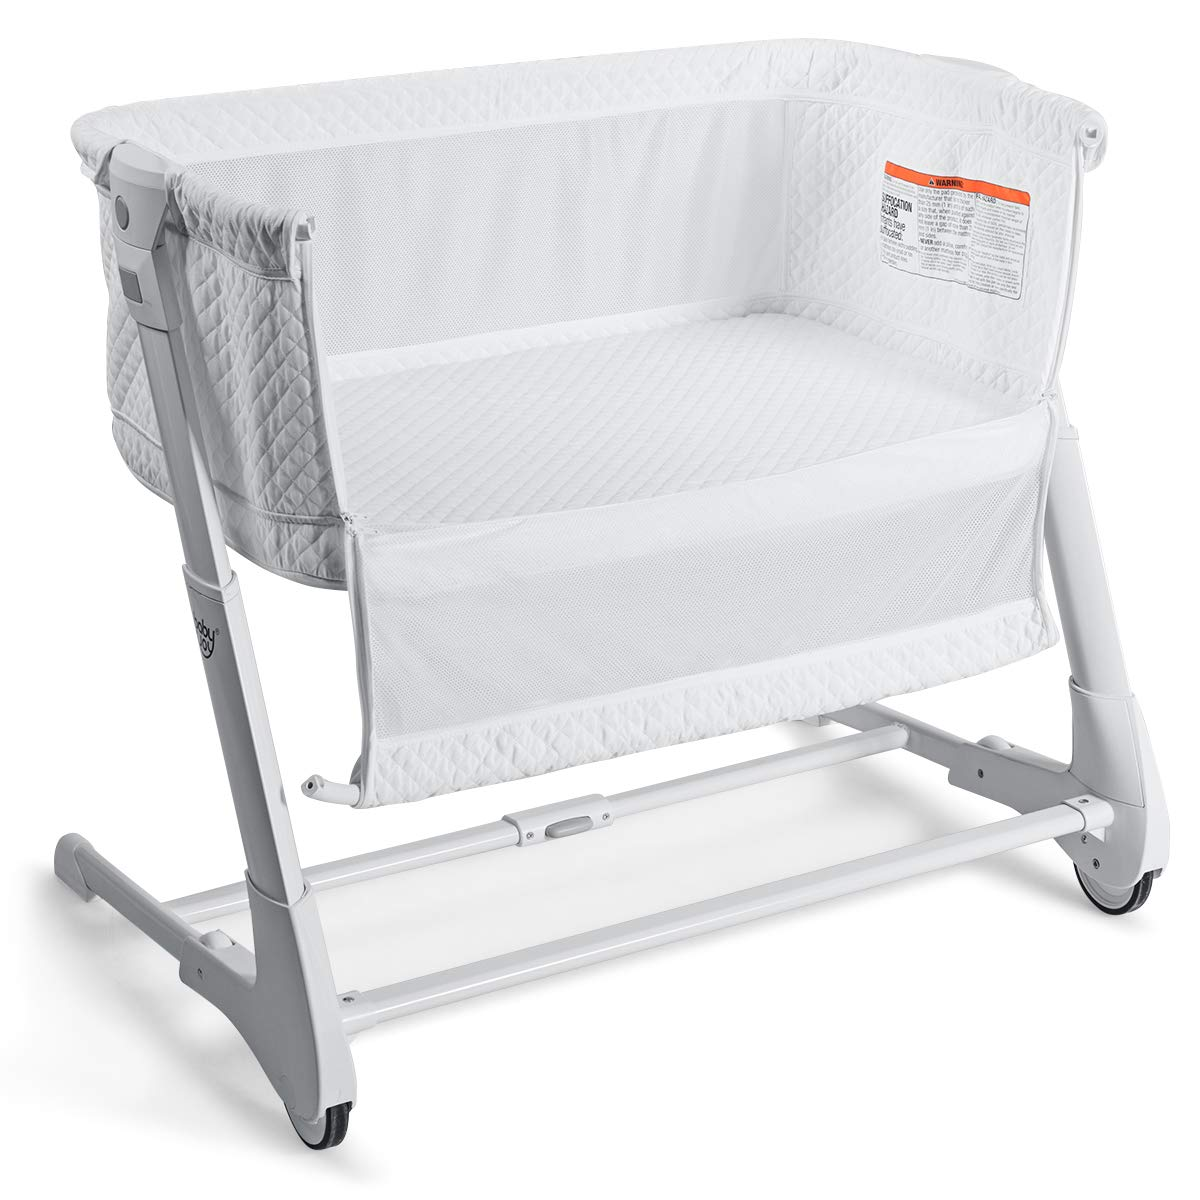 BABY JOY Baby Bedside Crib, 2 in 1 Height Angle Adjustable Sleeper Bed Side Bassinet w Detachable Washable Mattress, Straps, Easy Folding Movable Cradle for Newborn Infant, Breathable Mesh White